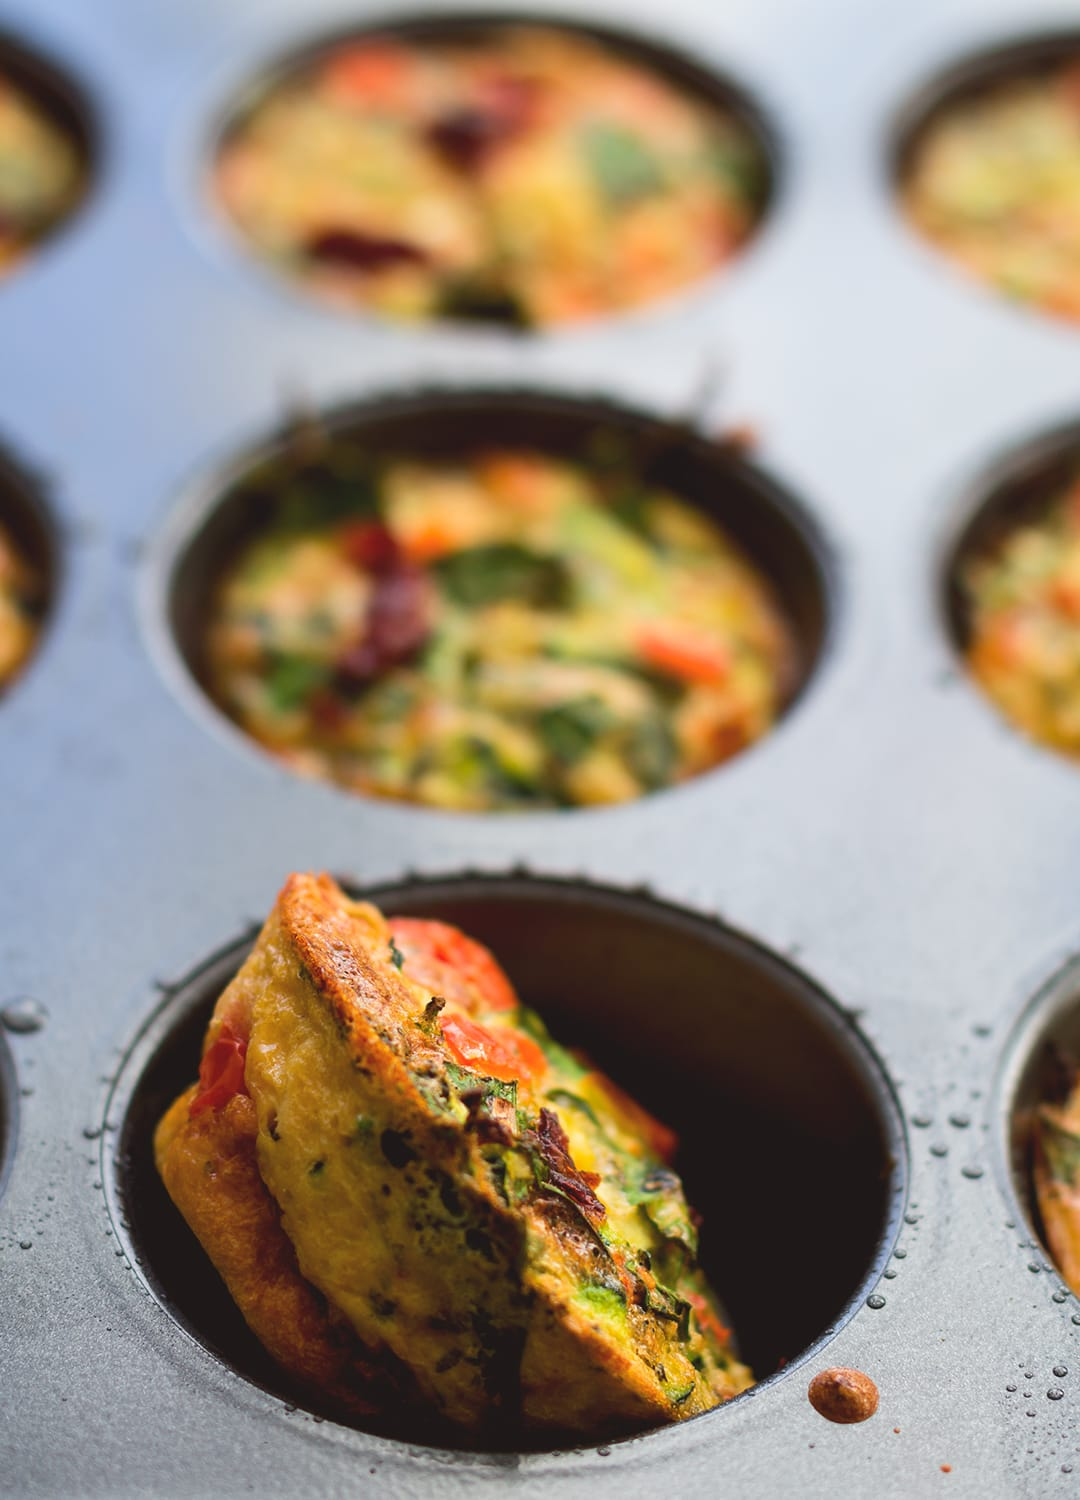 Healthy Breakfast Cheesy Egg Muffins - easy breakfast you can make ahead and eat on the go! Keep them in the fridge and add one or two to your salad for more protein! Delicious and cheesy muffins without the use of cheese - these are dairy free! | thehealthfulideas.com